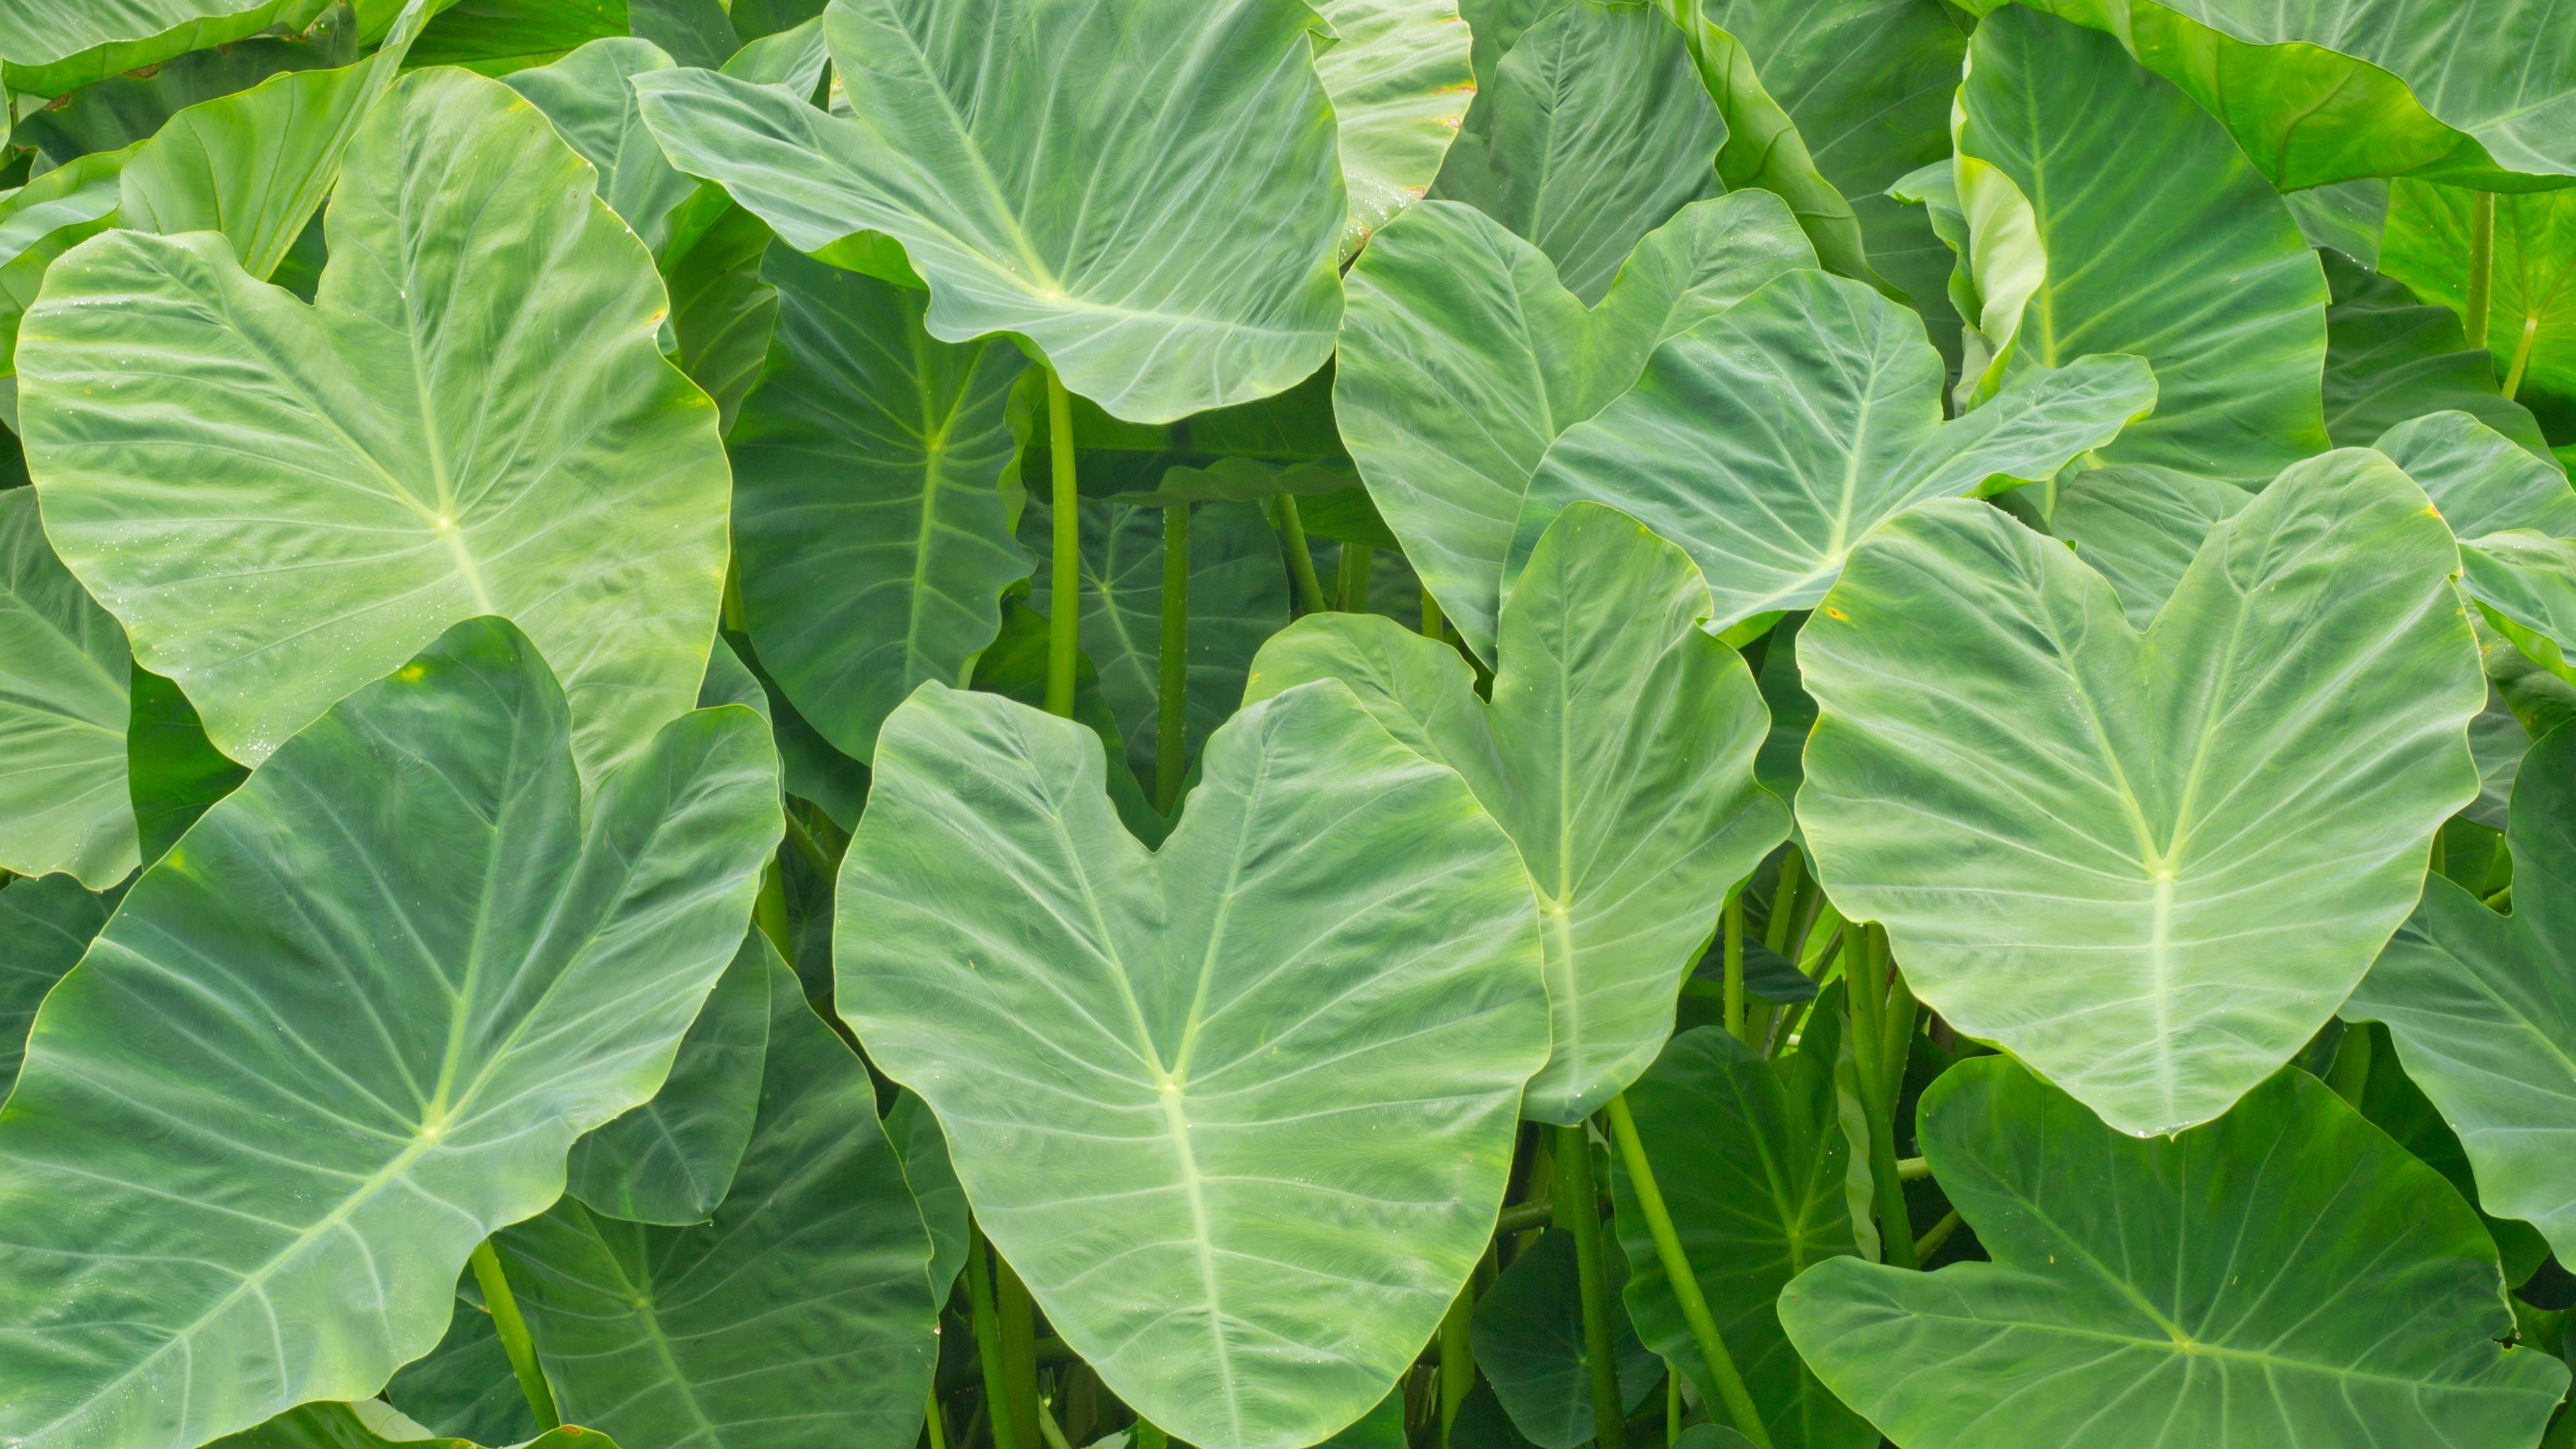 Green heart-shaped colocasial leaves.